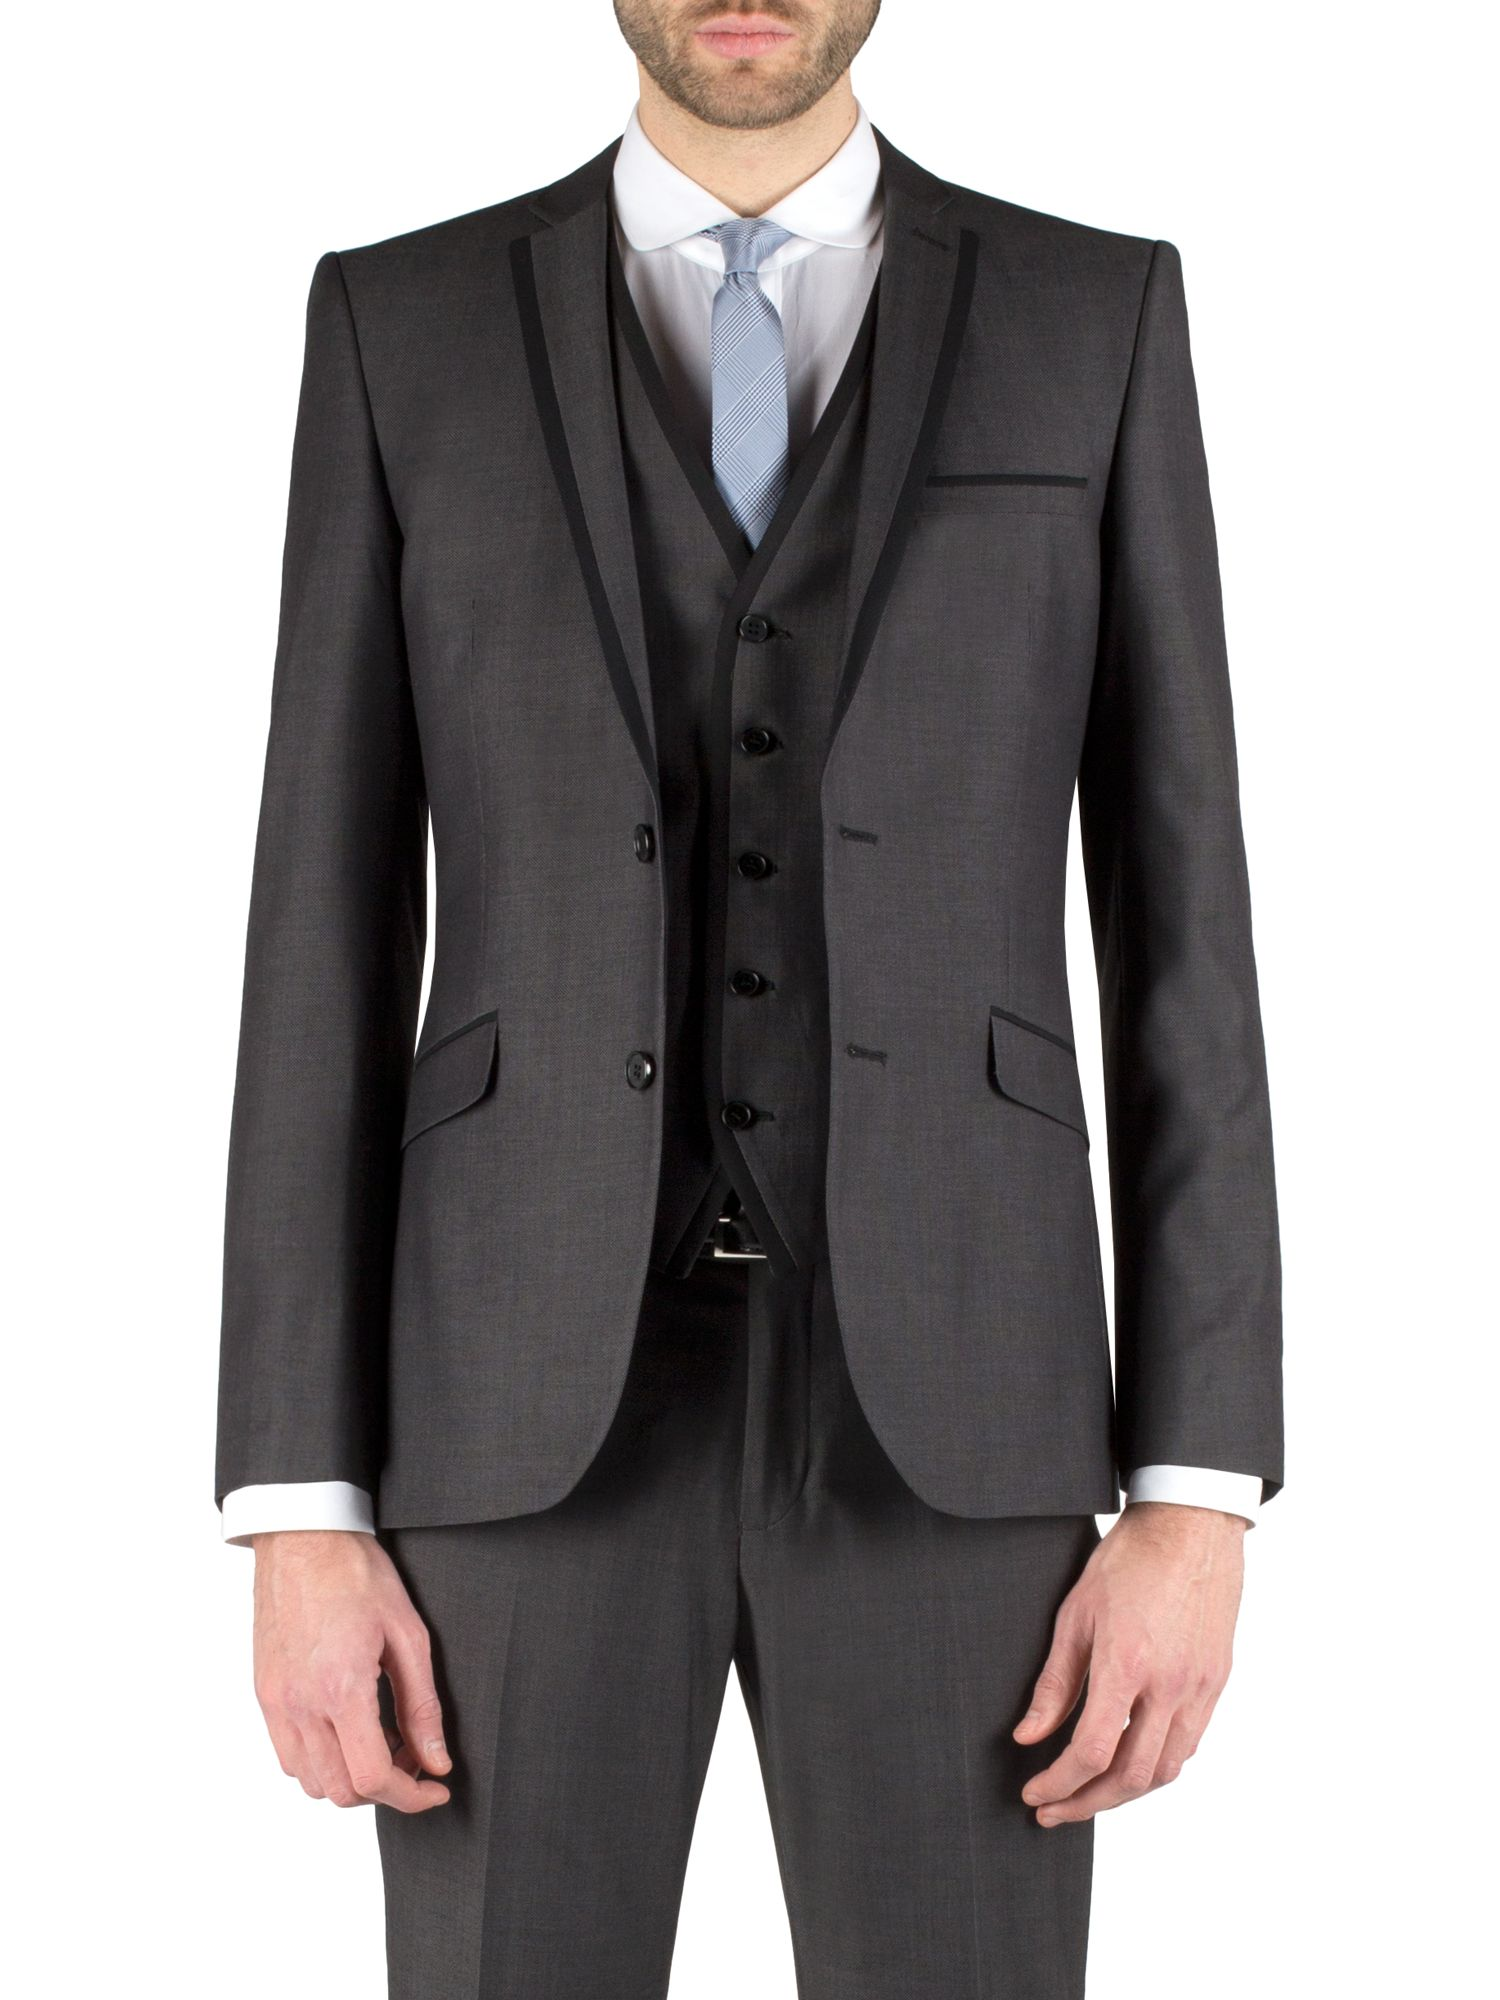 Micro design single breasted suit jacket